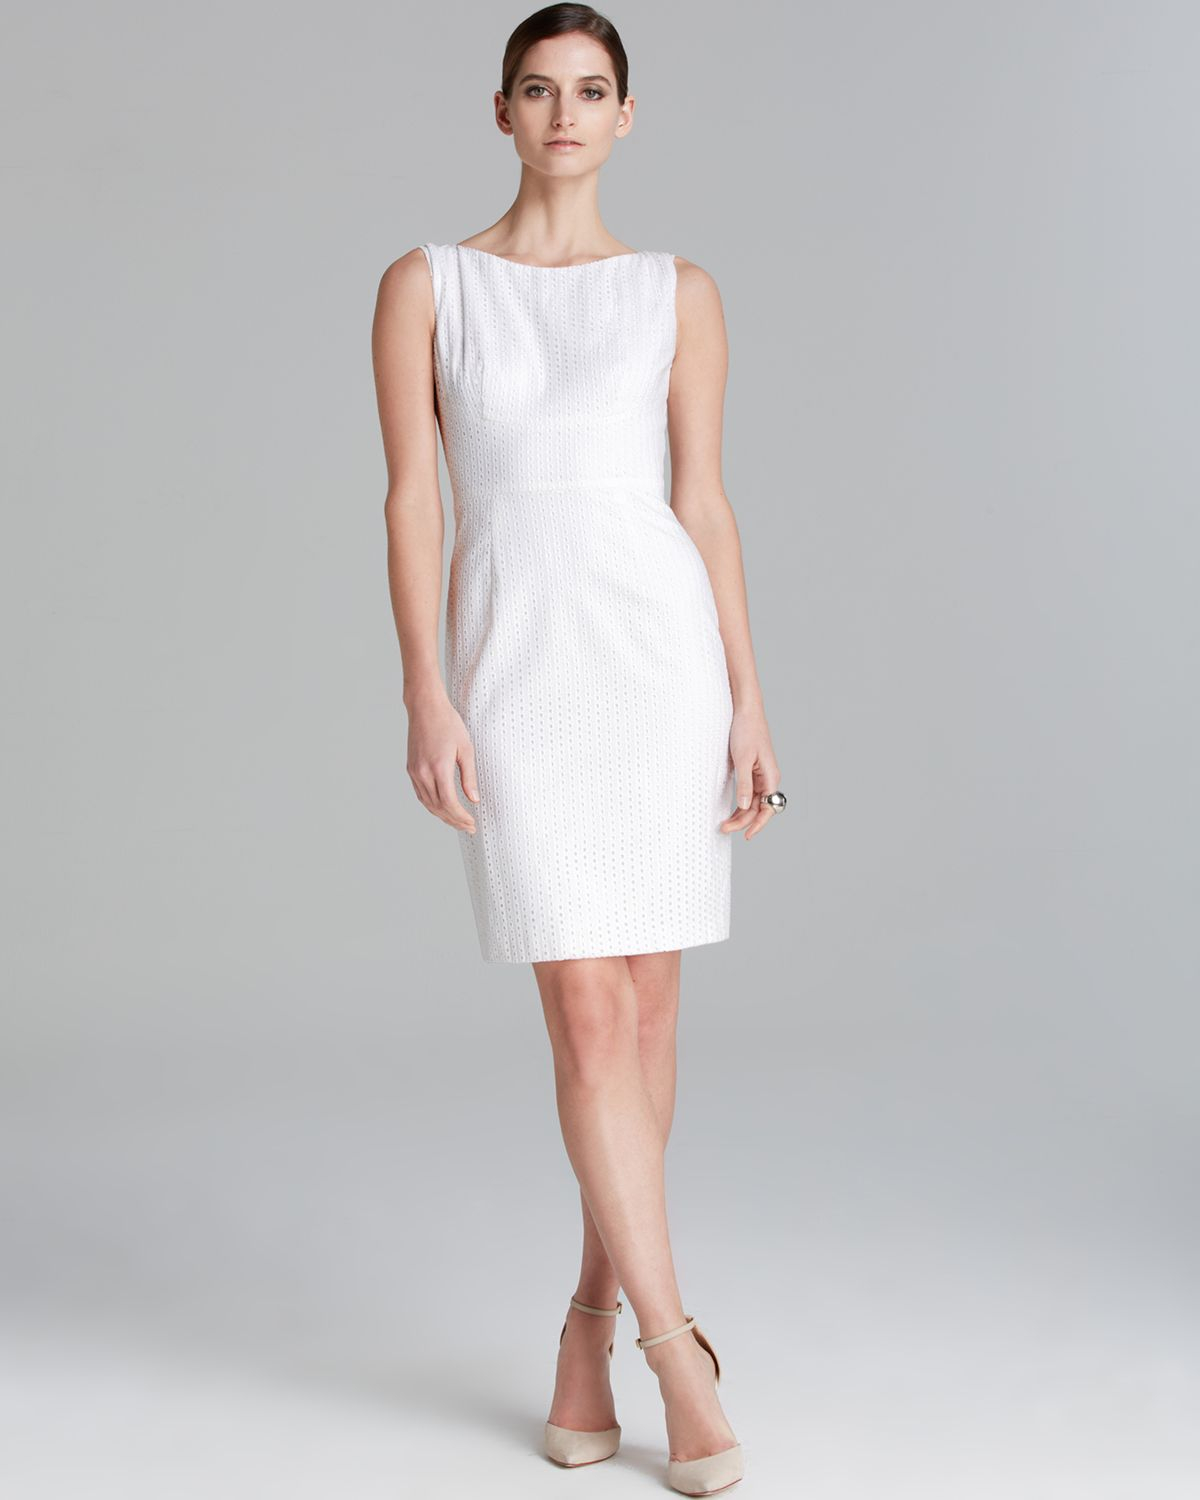 A white sheath dress fits in well at dressy but not overly formal summer events. For a more casual look suitable for festivals or vacation shopping trips, try the breezy, colorful style of Tory Burch dresses.